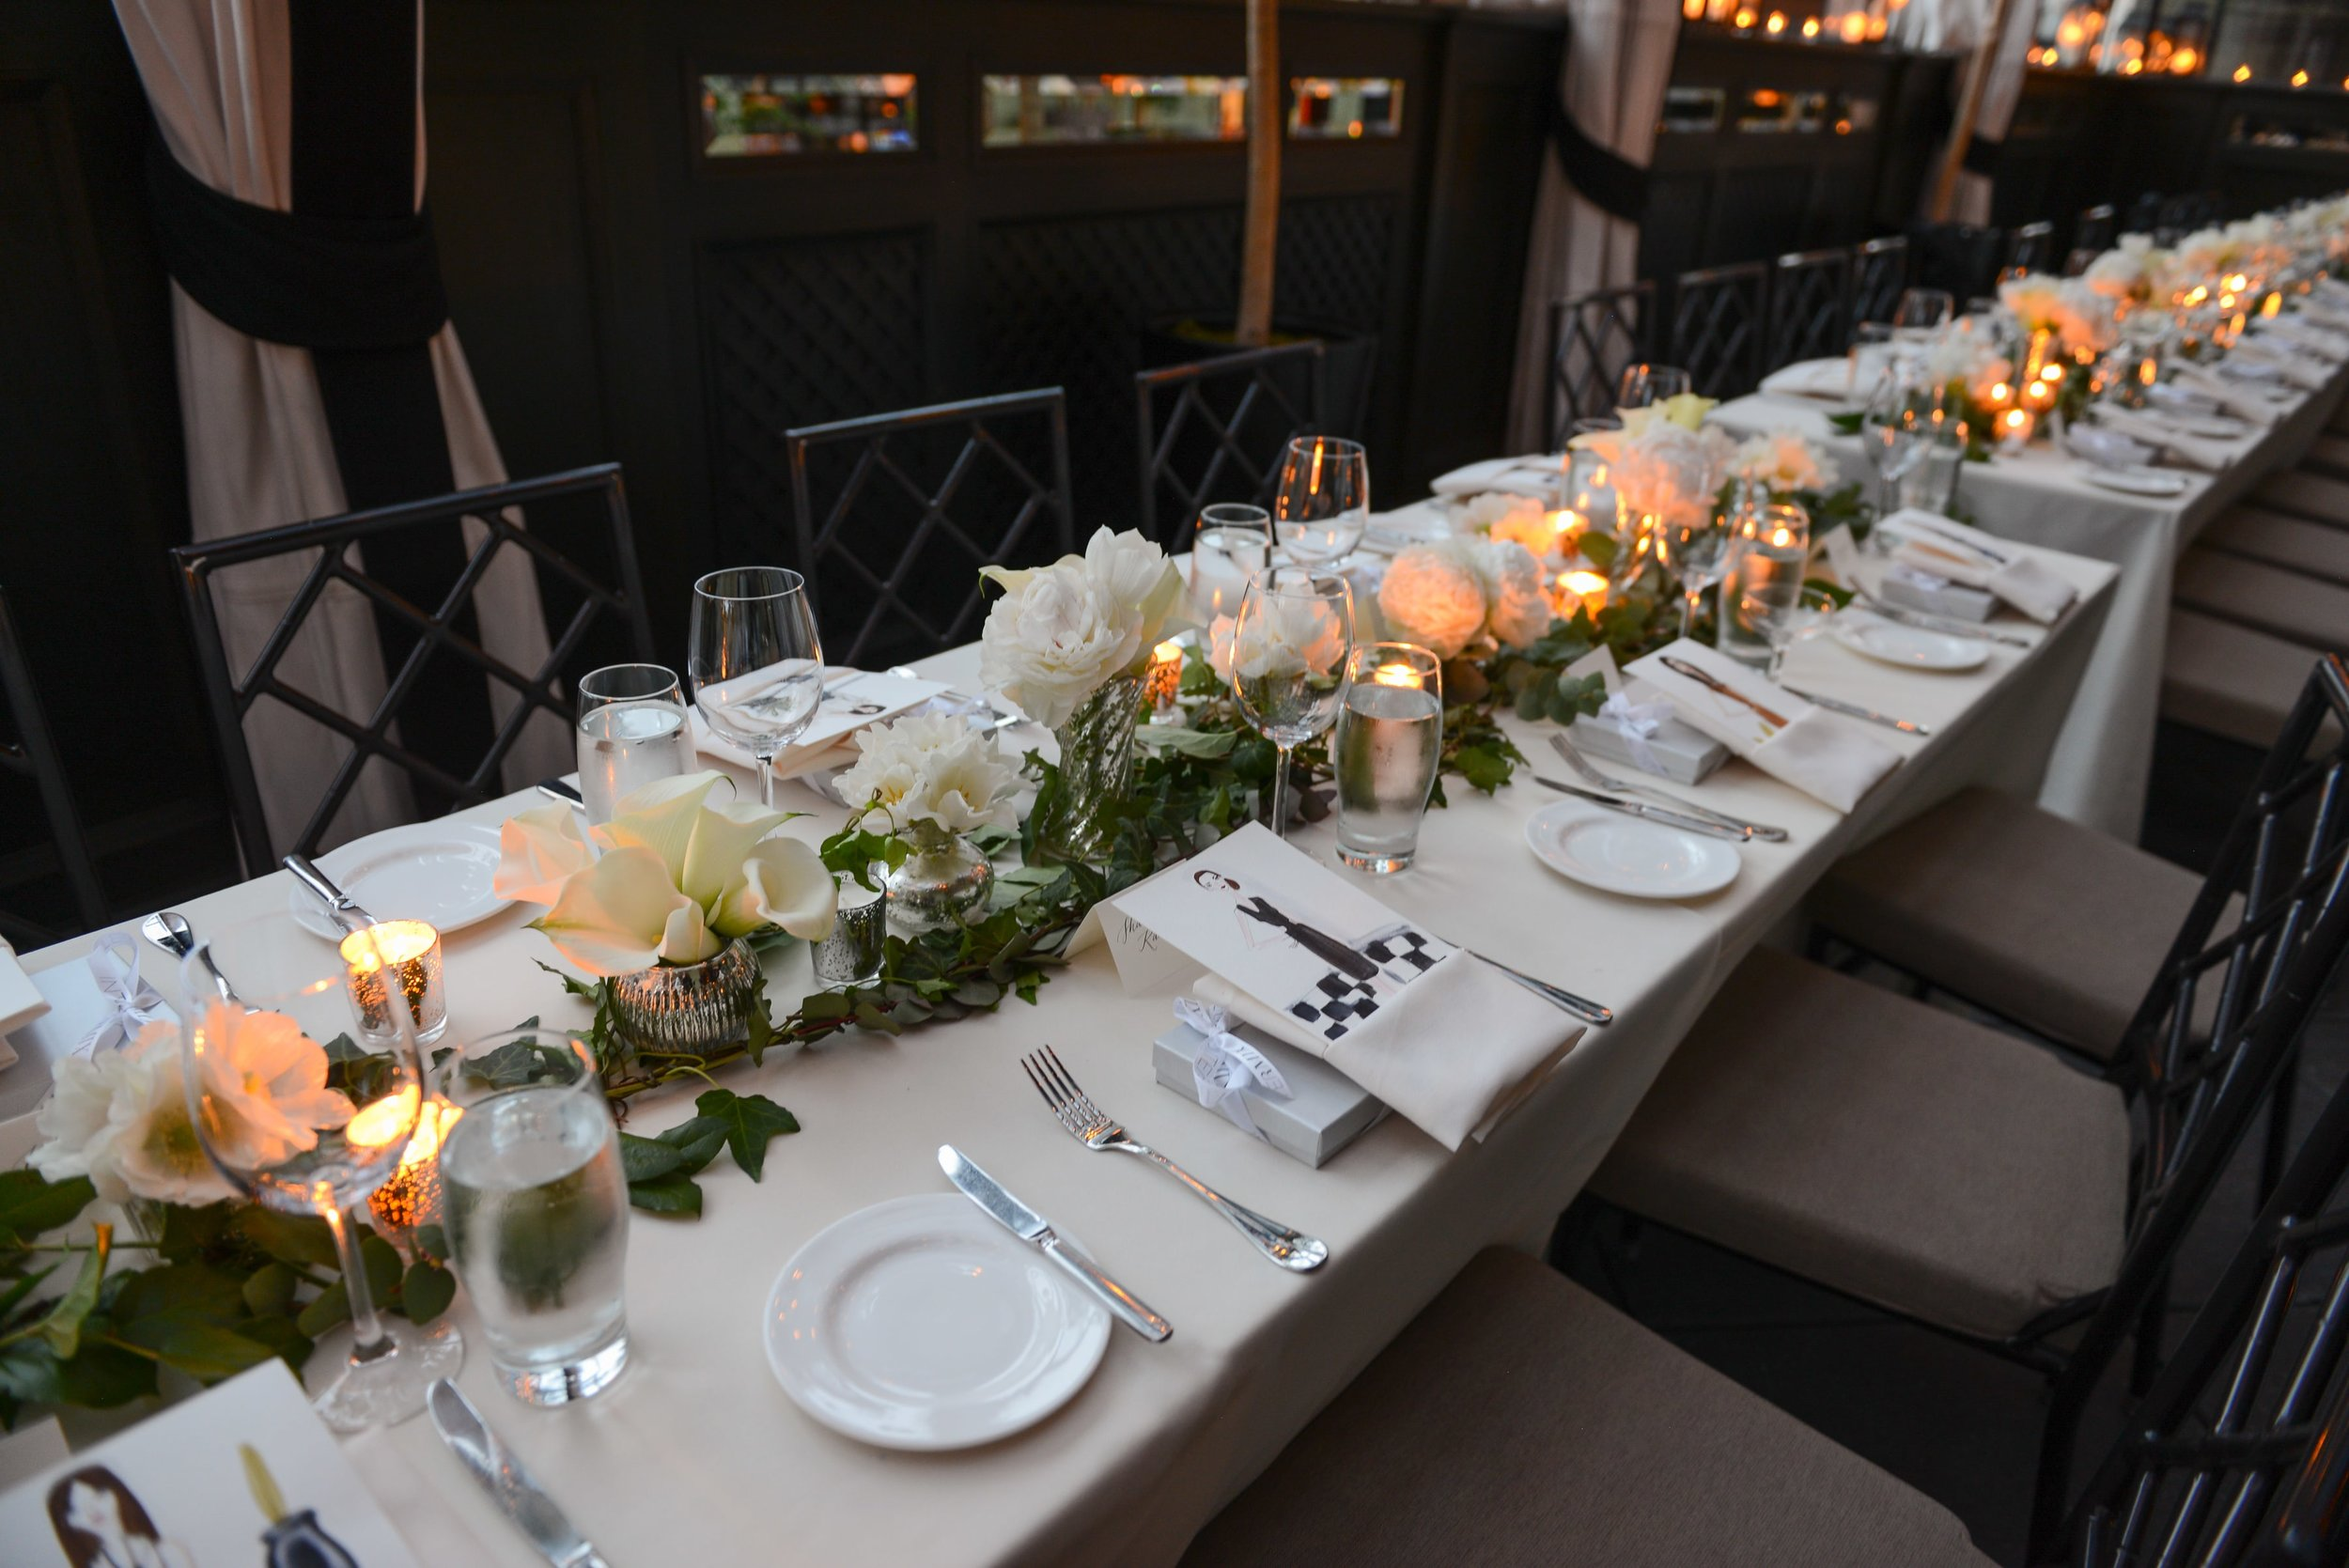 CND EVENTS - INTERMIX DINNER - SPRING TABLESCAPE 2019 - SPRING WHITES - B FLORAL